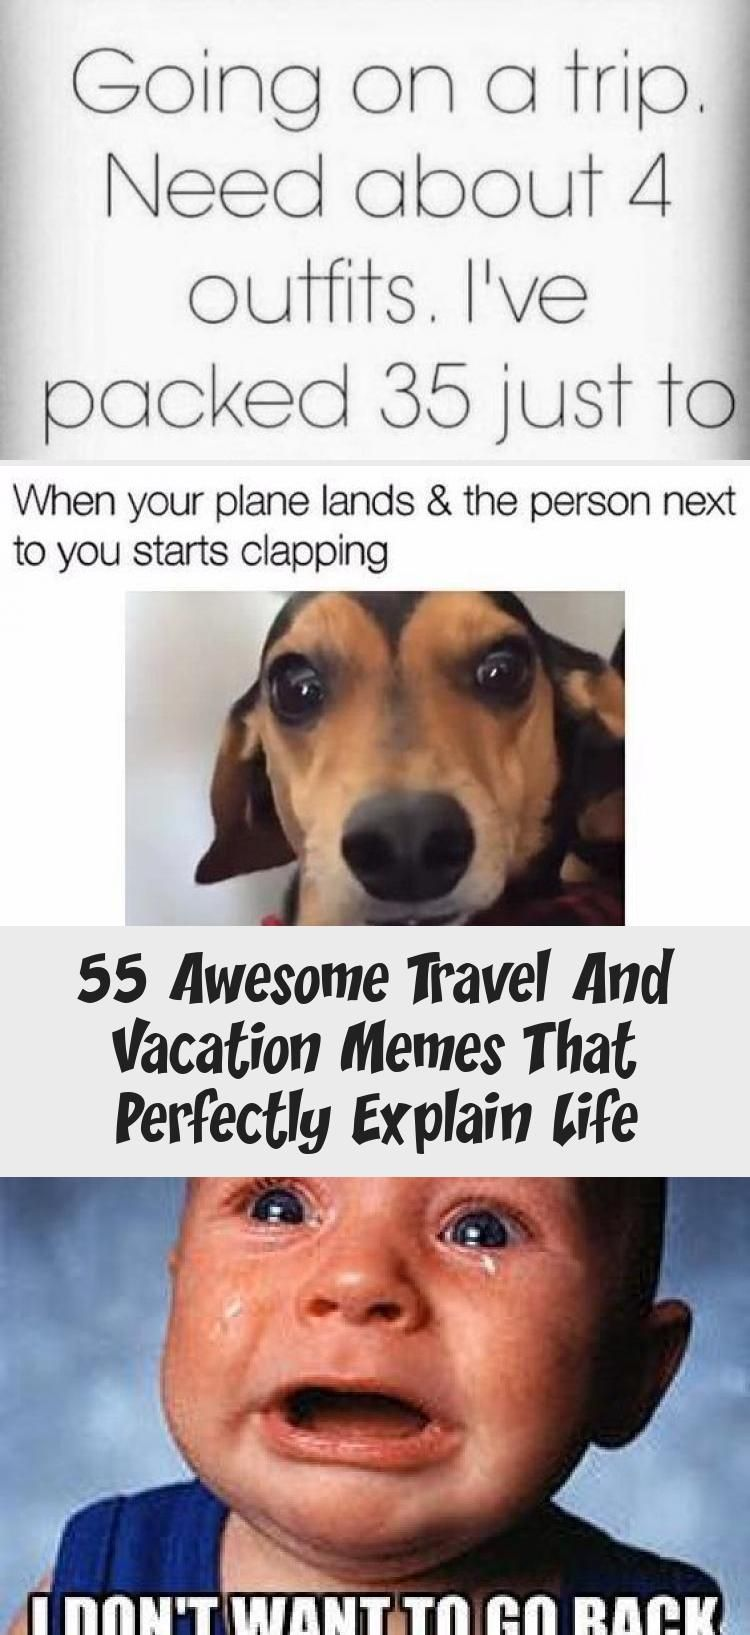 55 Awesome Travel And Vacation Memes That Perfectly Explain Life  Anime 55 hilarious travel memes to inspire wanderlust and adventure  vacation quotes humor memes hilario...